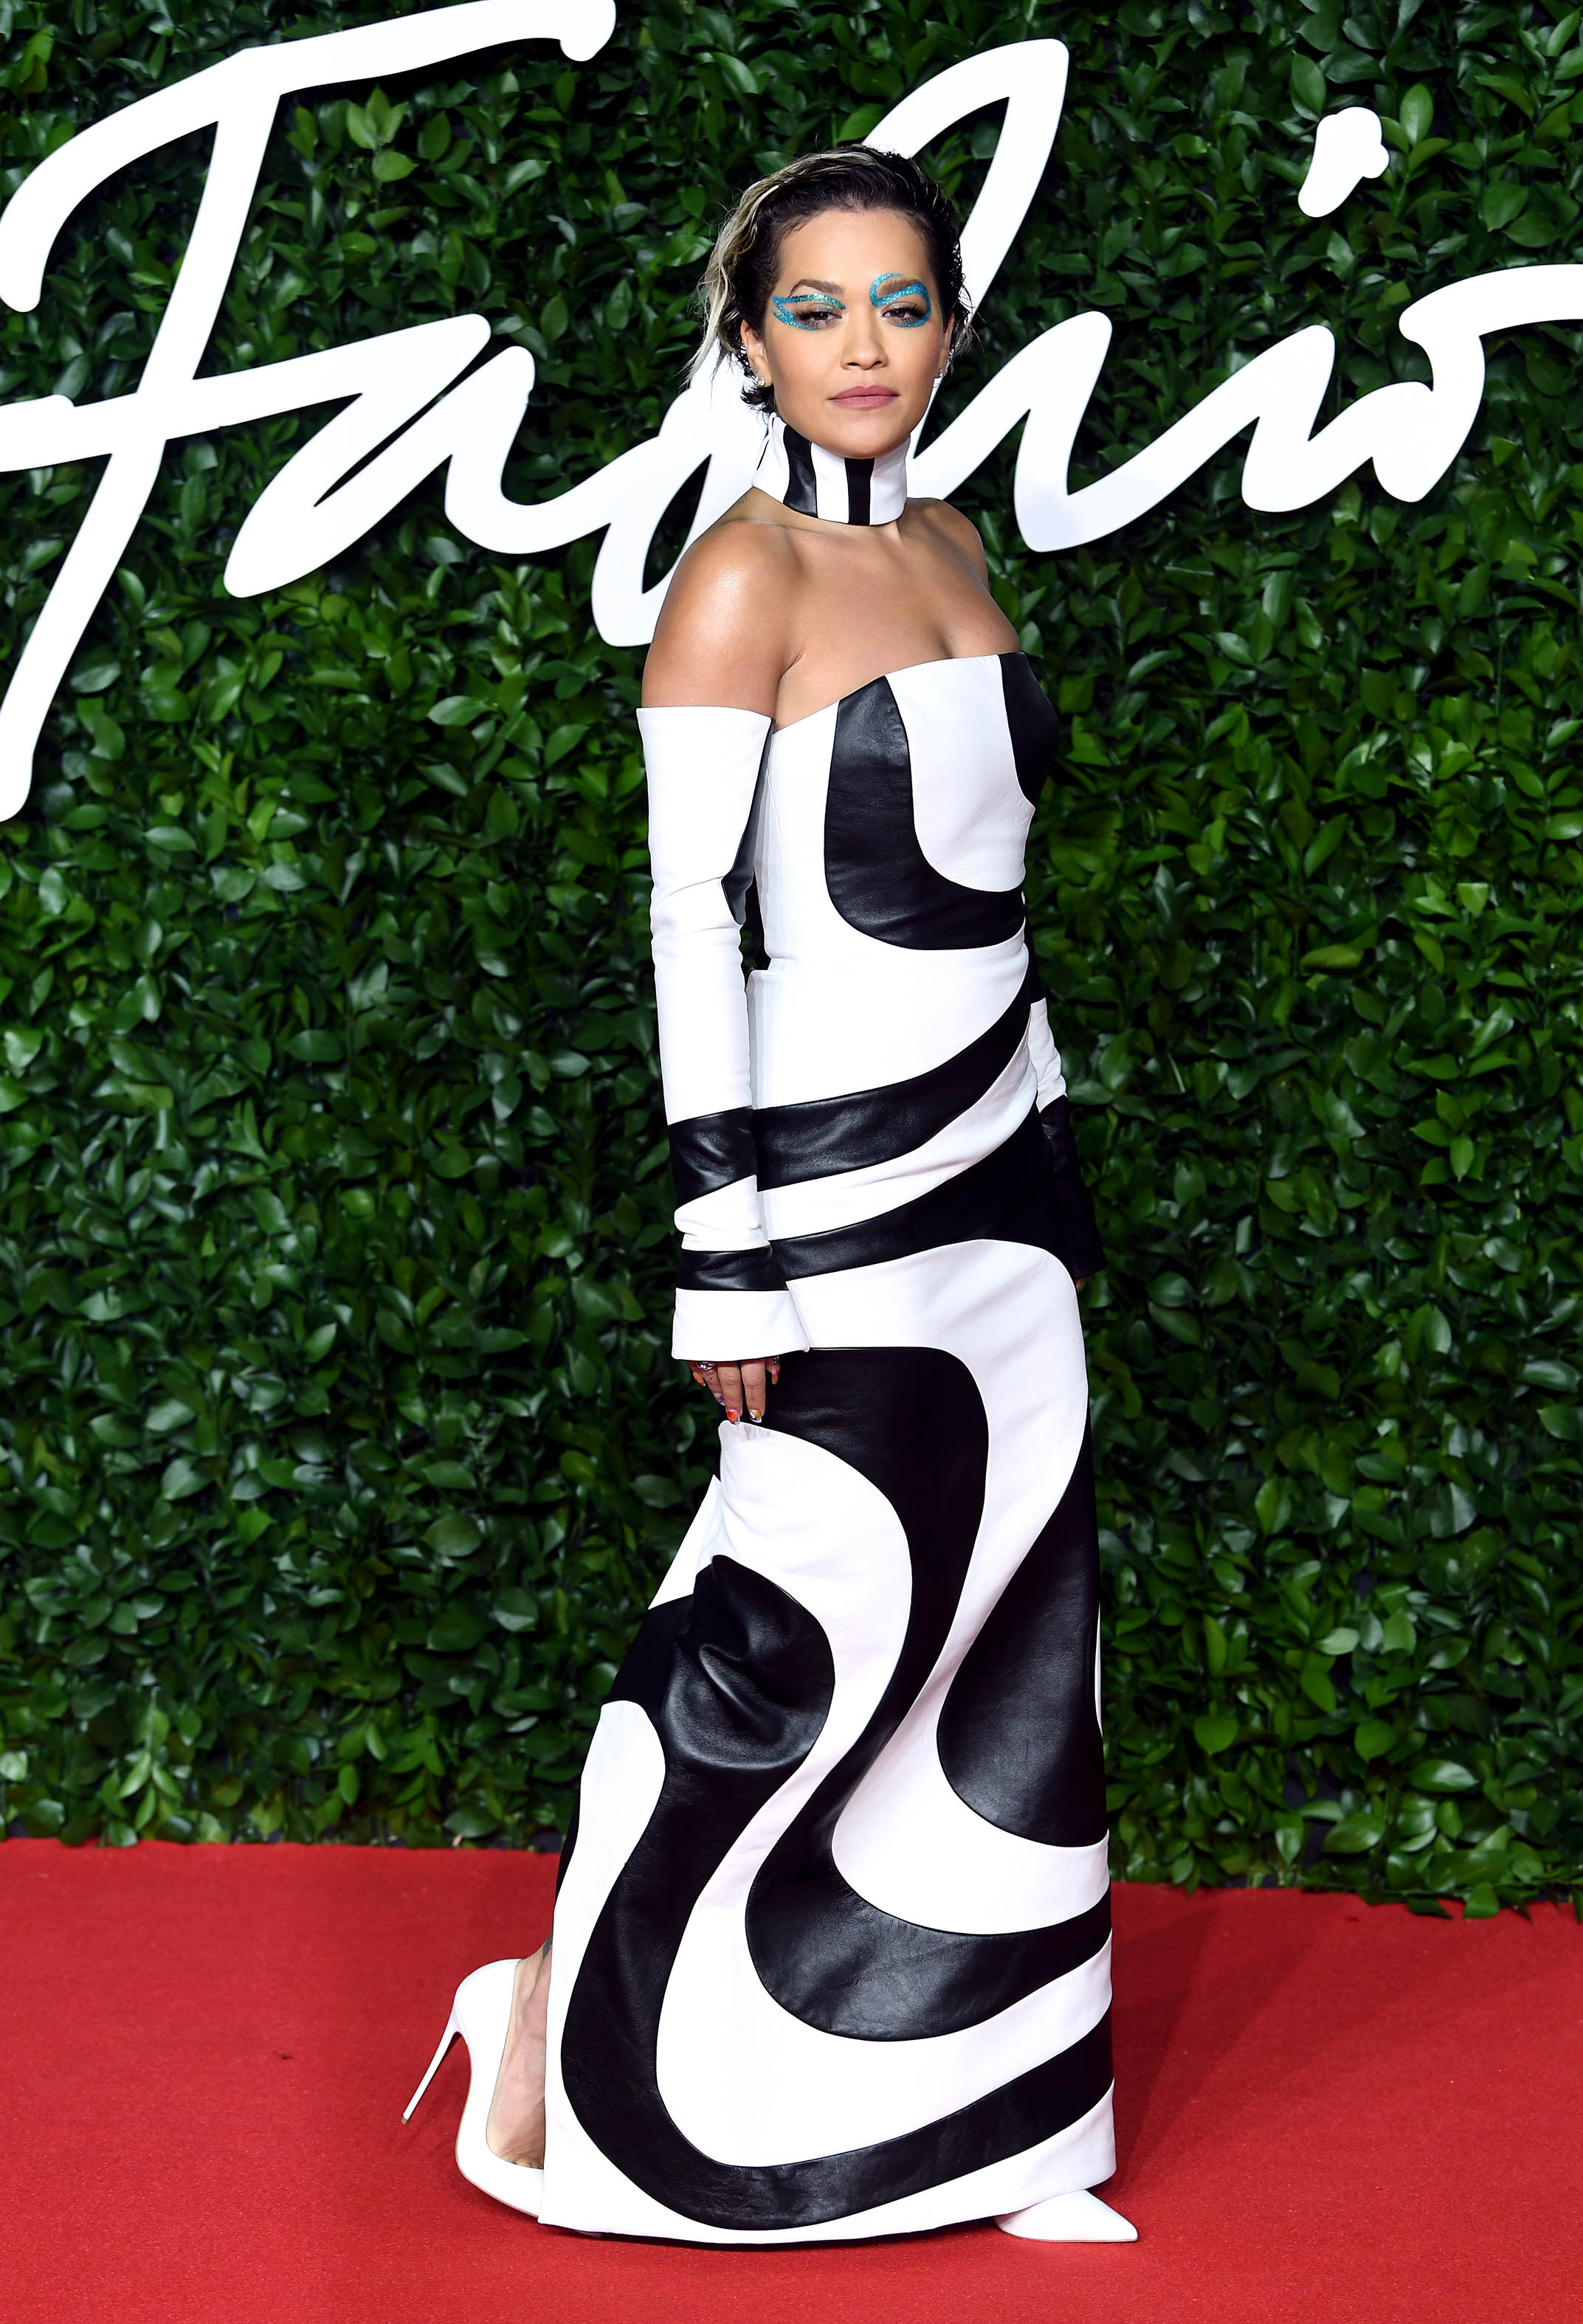 Rita Ora attends The Fashion Awards